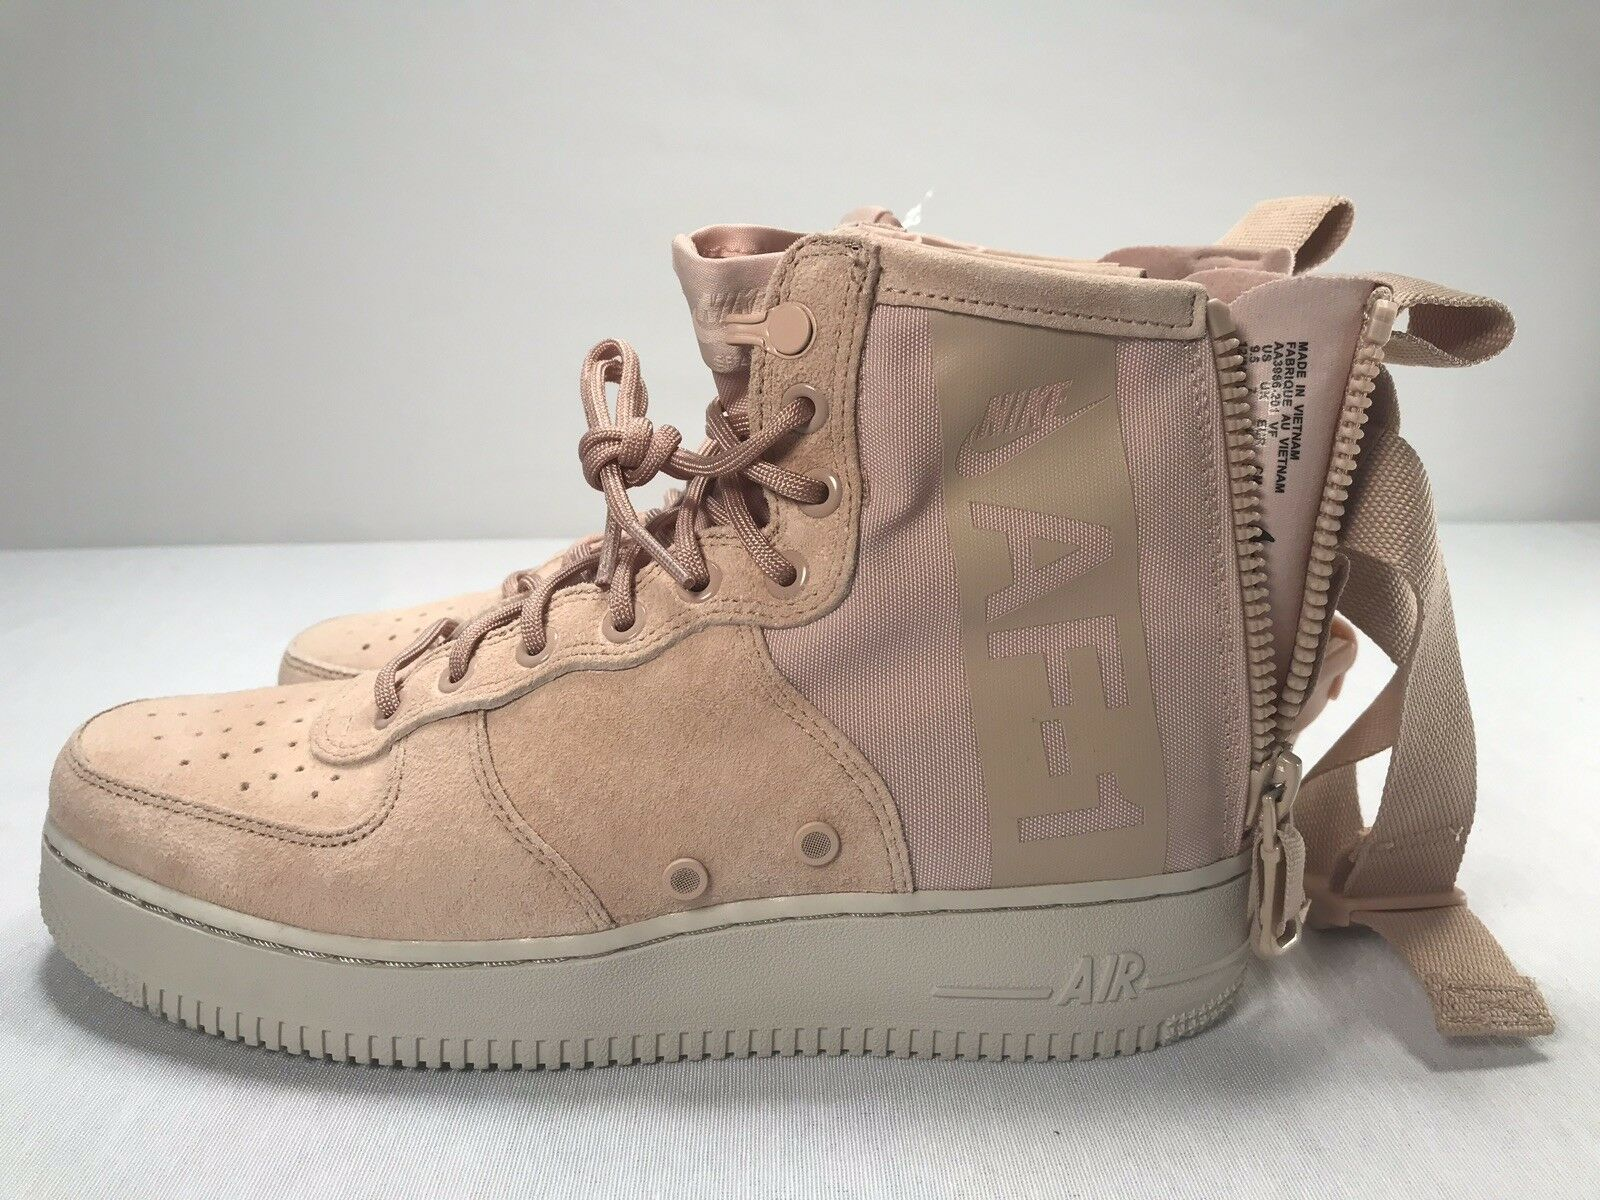 Nike SF Air Force 1 Mid Suede Coral Stardust Special Forces Size 9.5  AJ9502-600